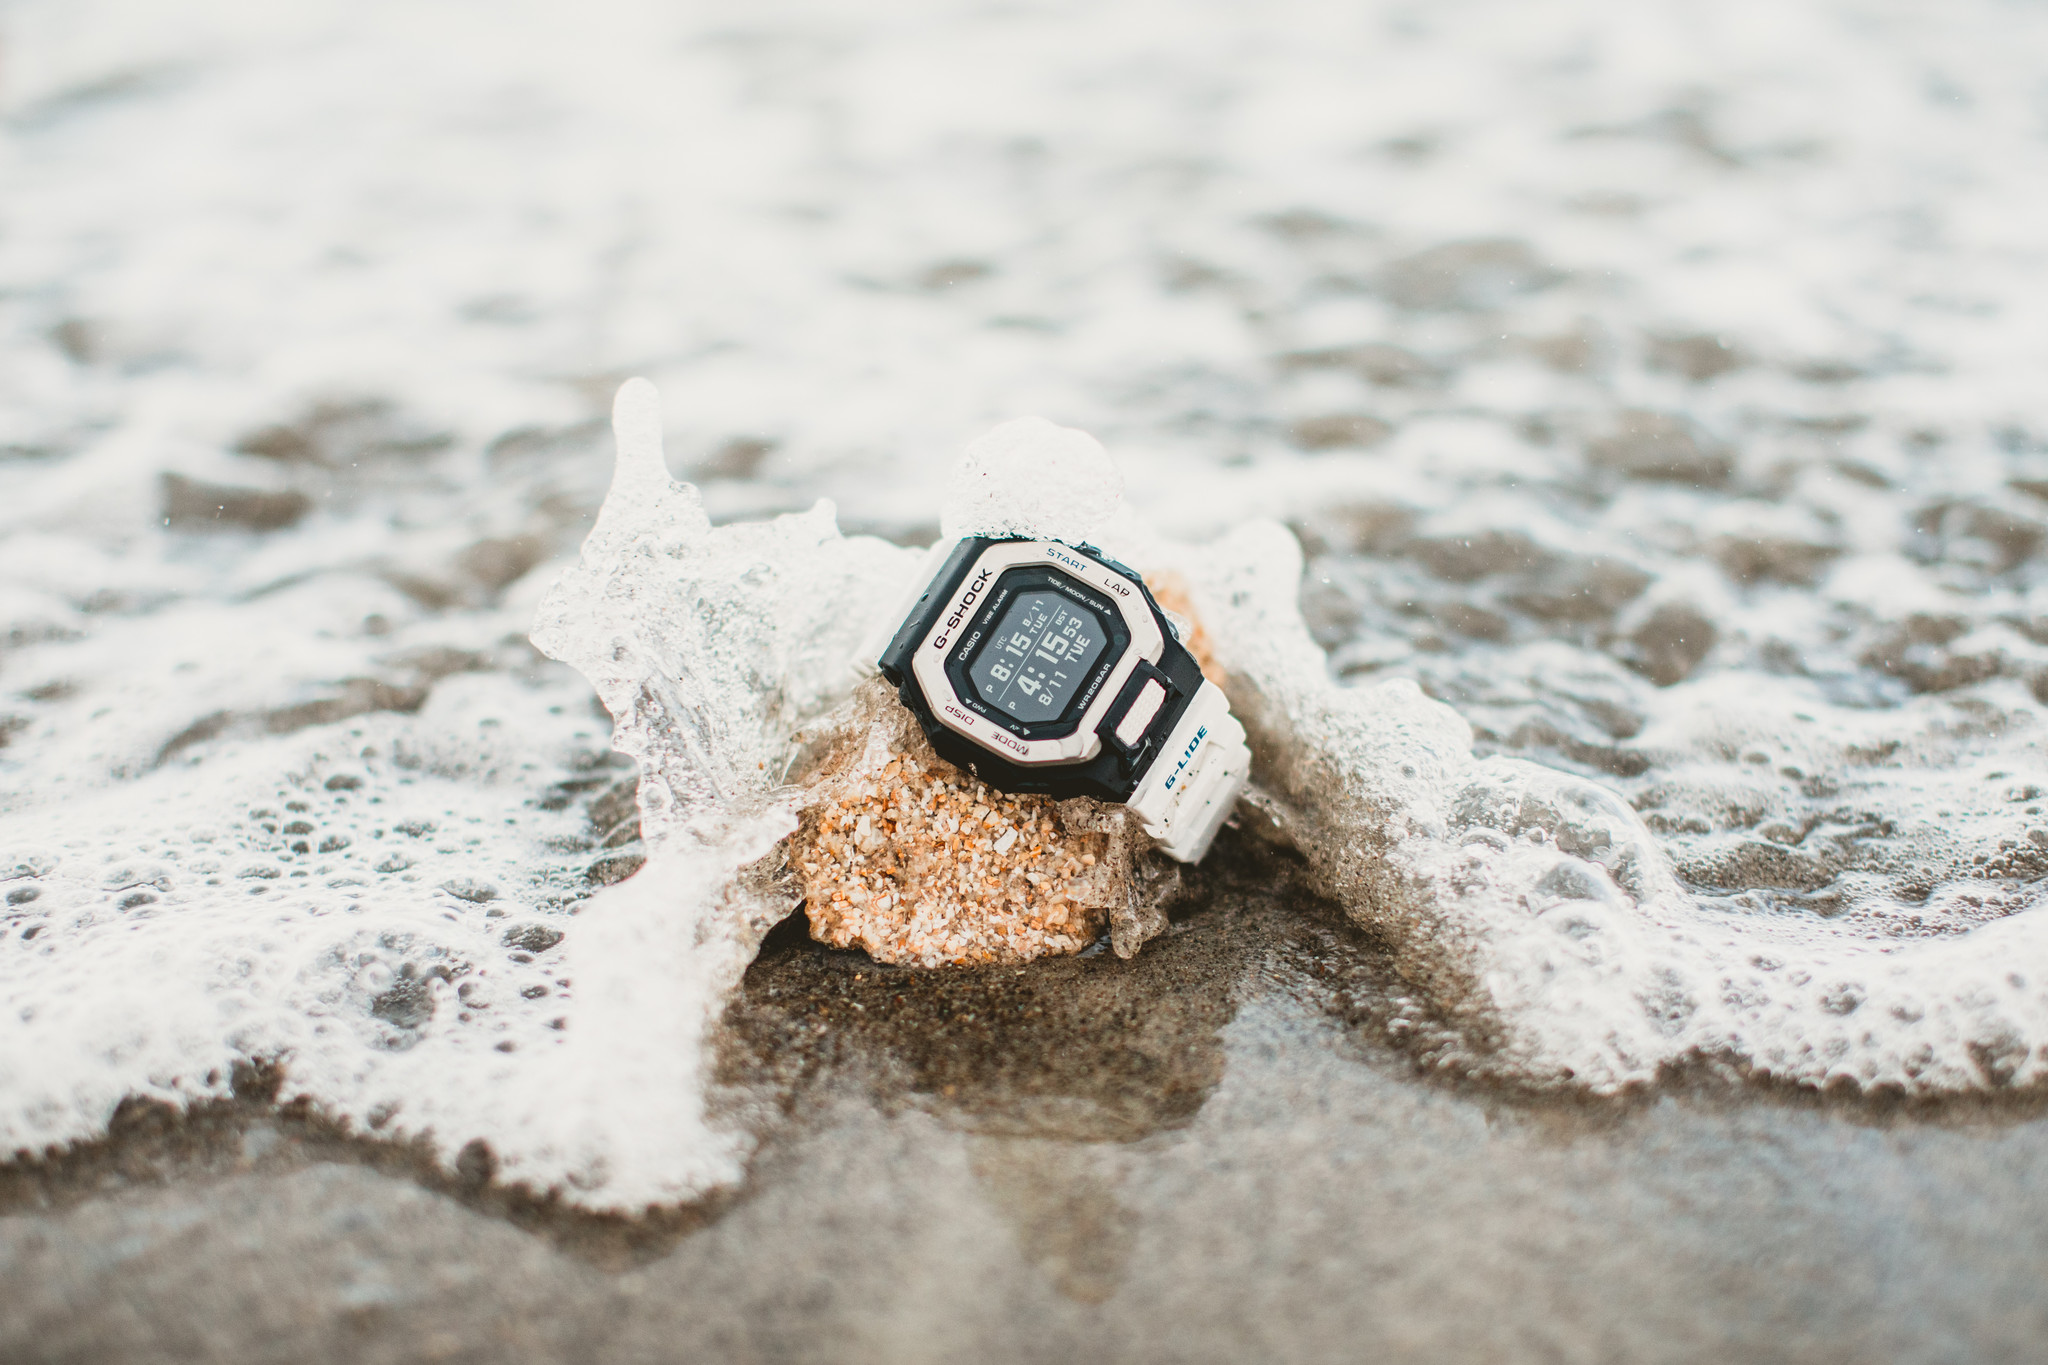 Does G-Shock Make The Best Tide Watch??